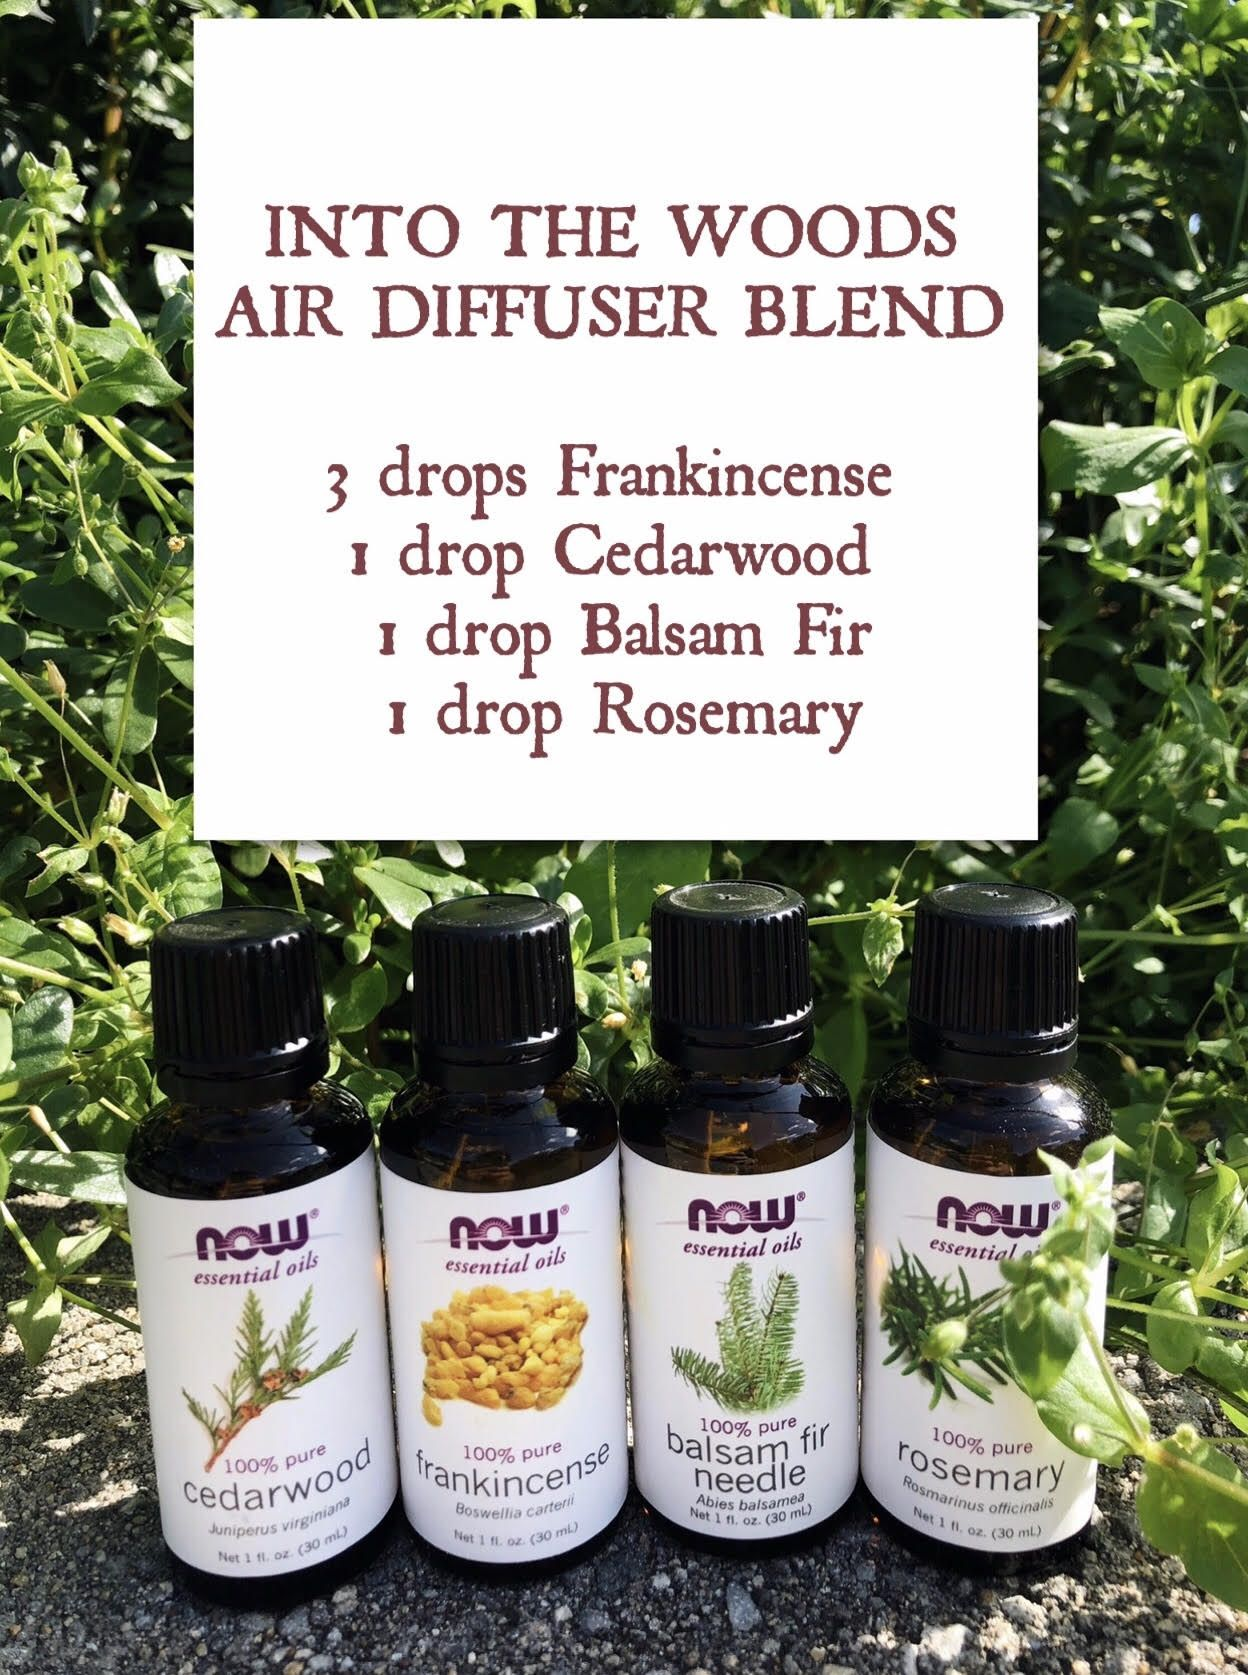 Perfect air diffuser blend just in time for Fall! 3 drops